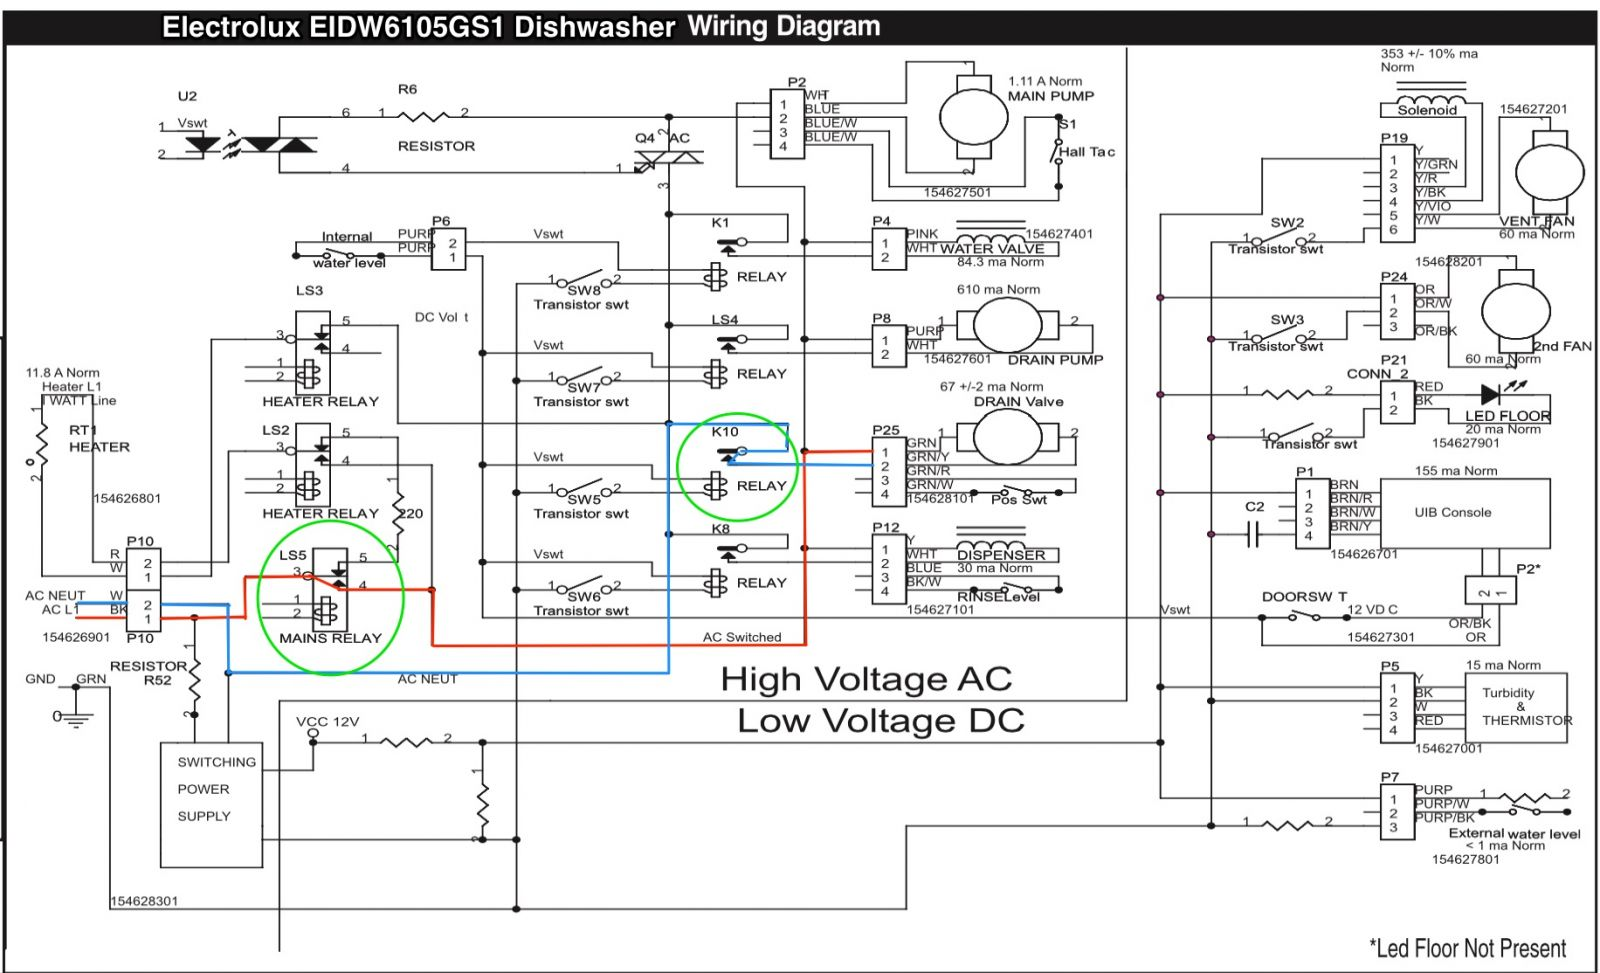 electrolux eidw6105gs1 dishwasher wiring diagram the Bosch Dishwasher Wiring Diagram Bosch Dishwasher Wiring Diagram #10 bosch dishwasher wiring diagram